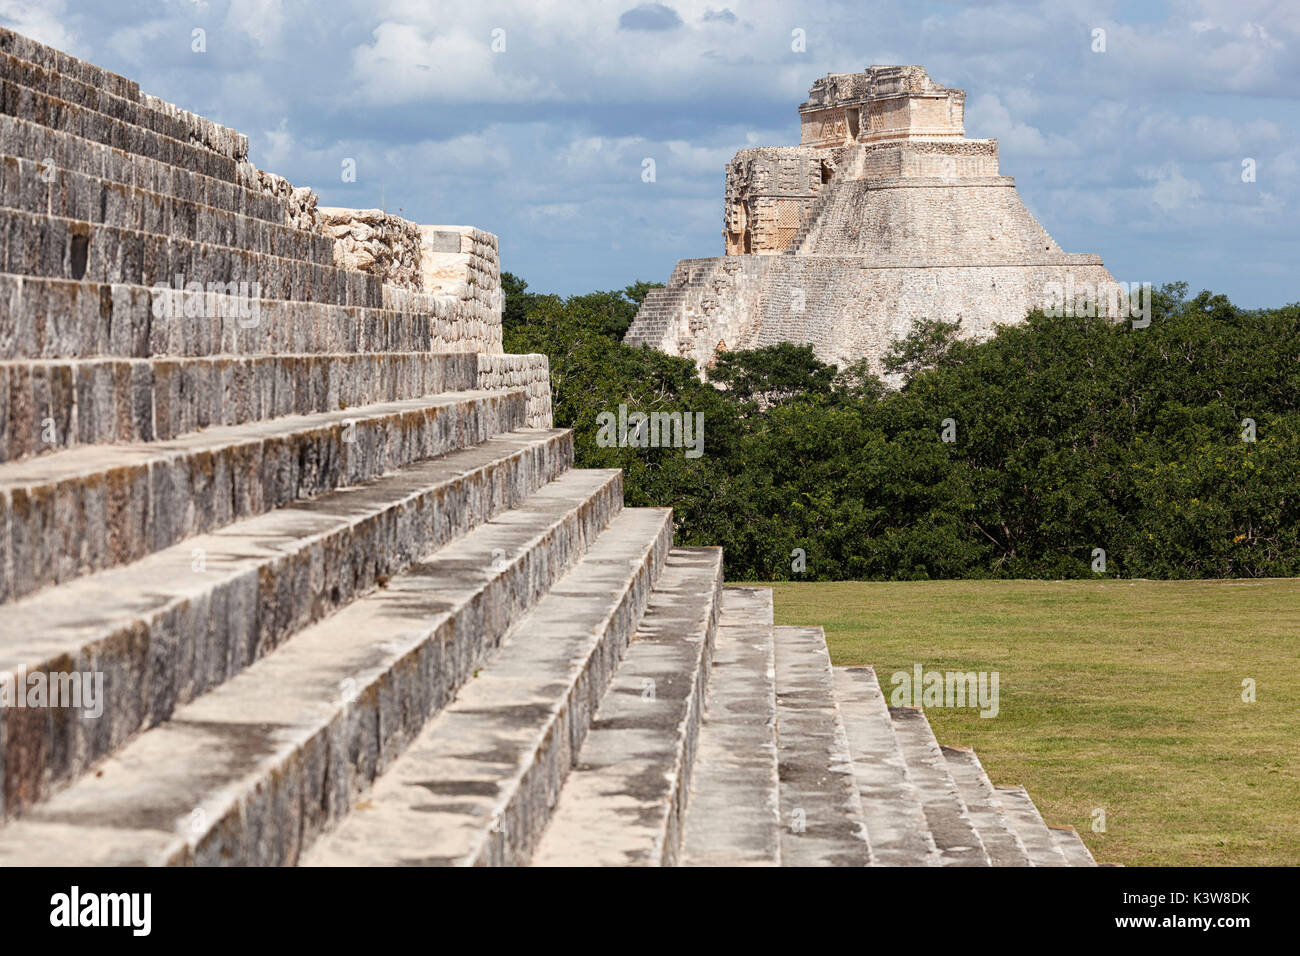 Pyramid of the Magician, Uxmal archeological site, Yucatan, Mexico. - Stock Image